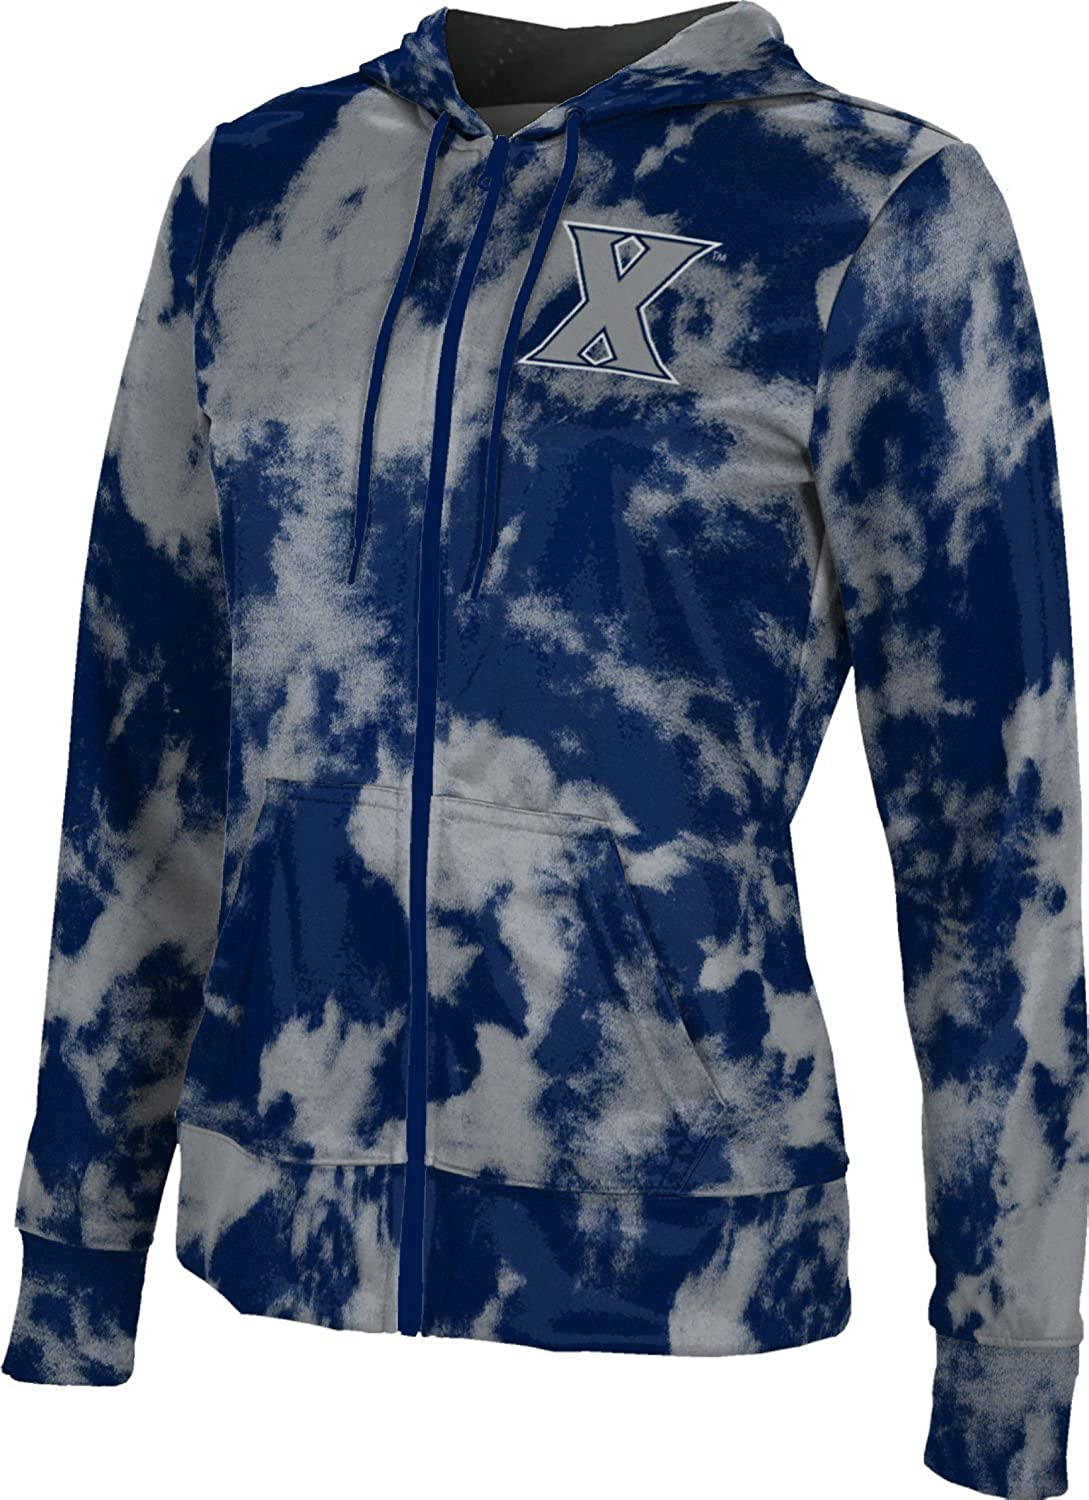 ProSphere Drake University Girls Zipper Hoodie School Spirit Sweatshirt Grunge